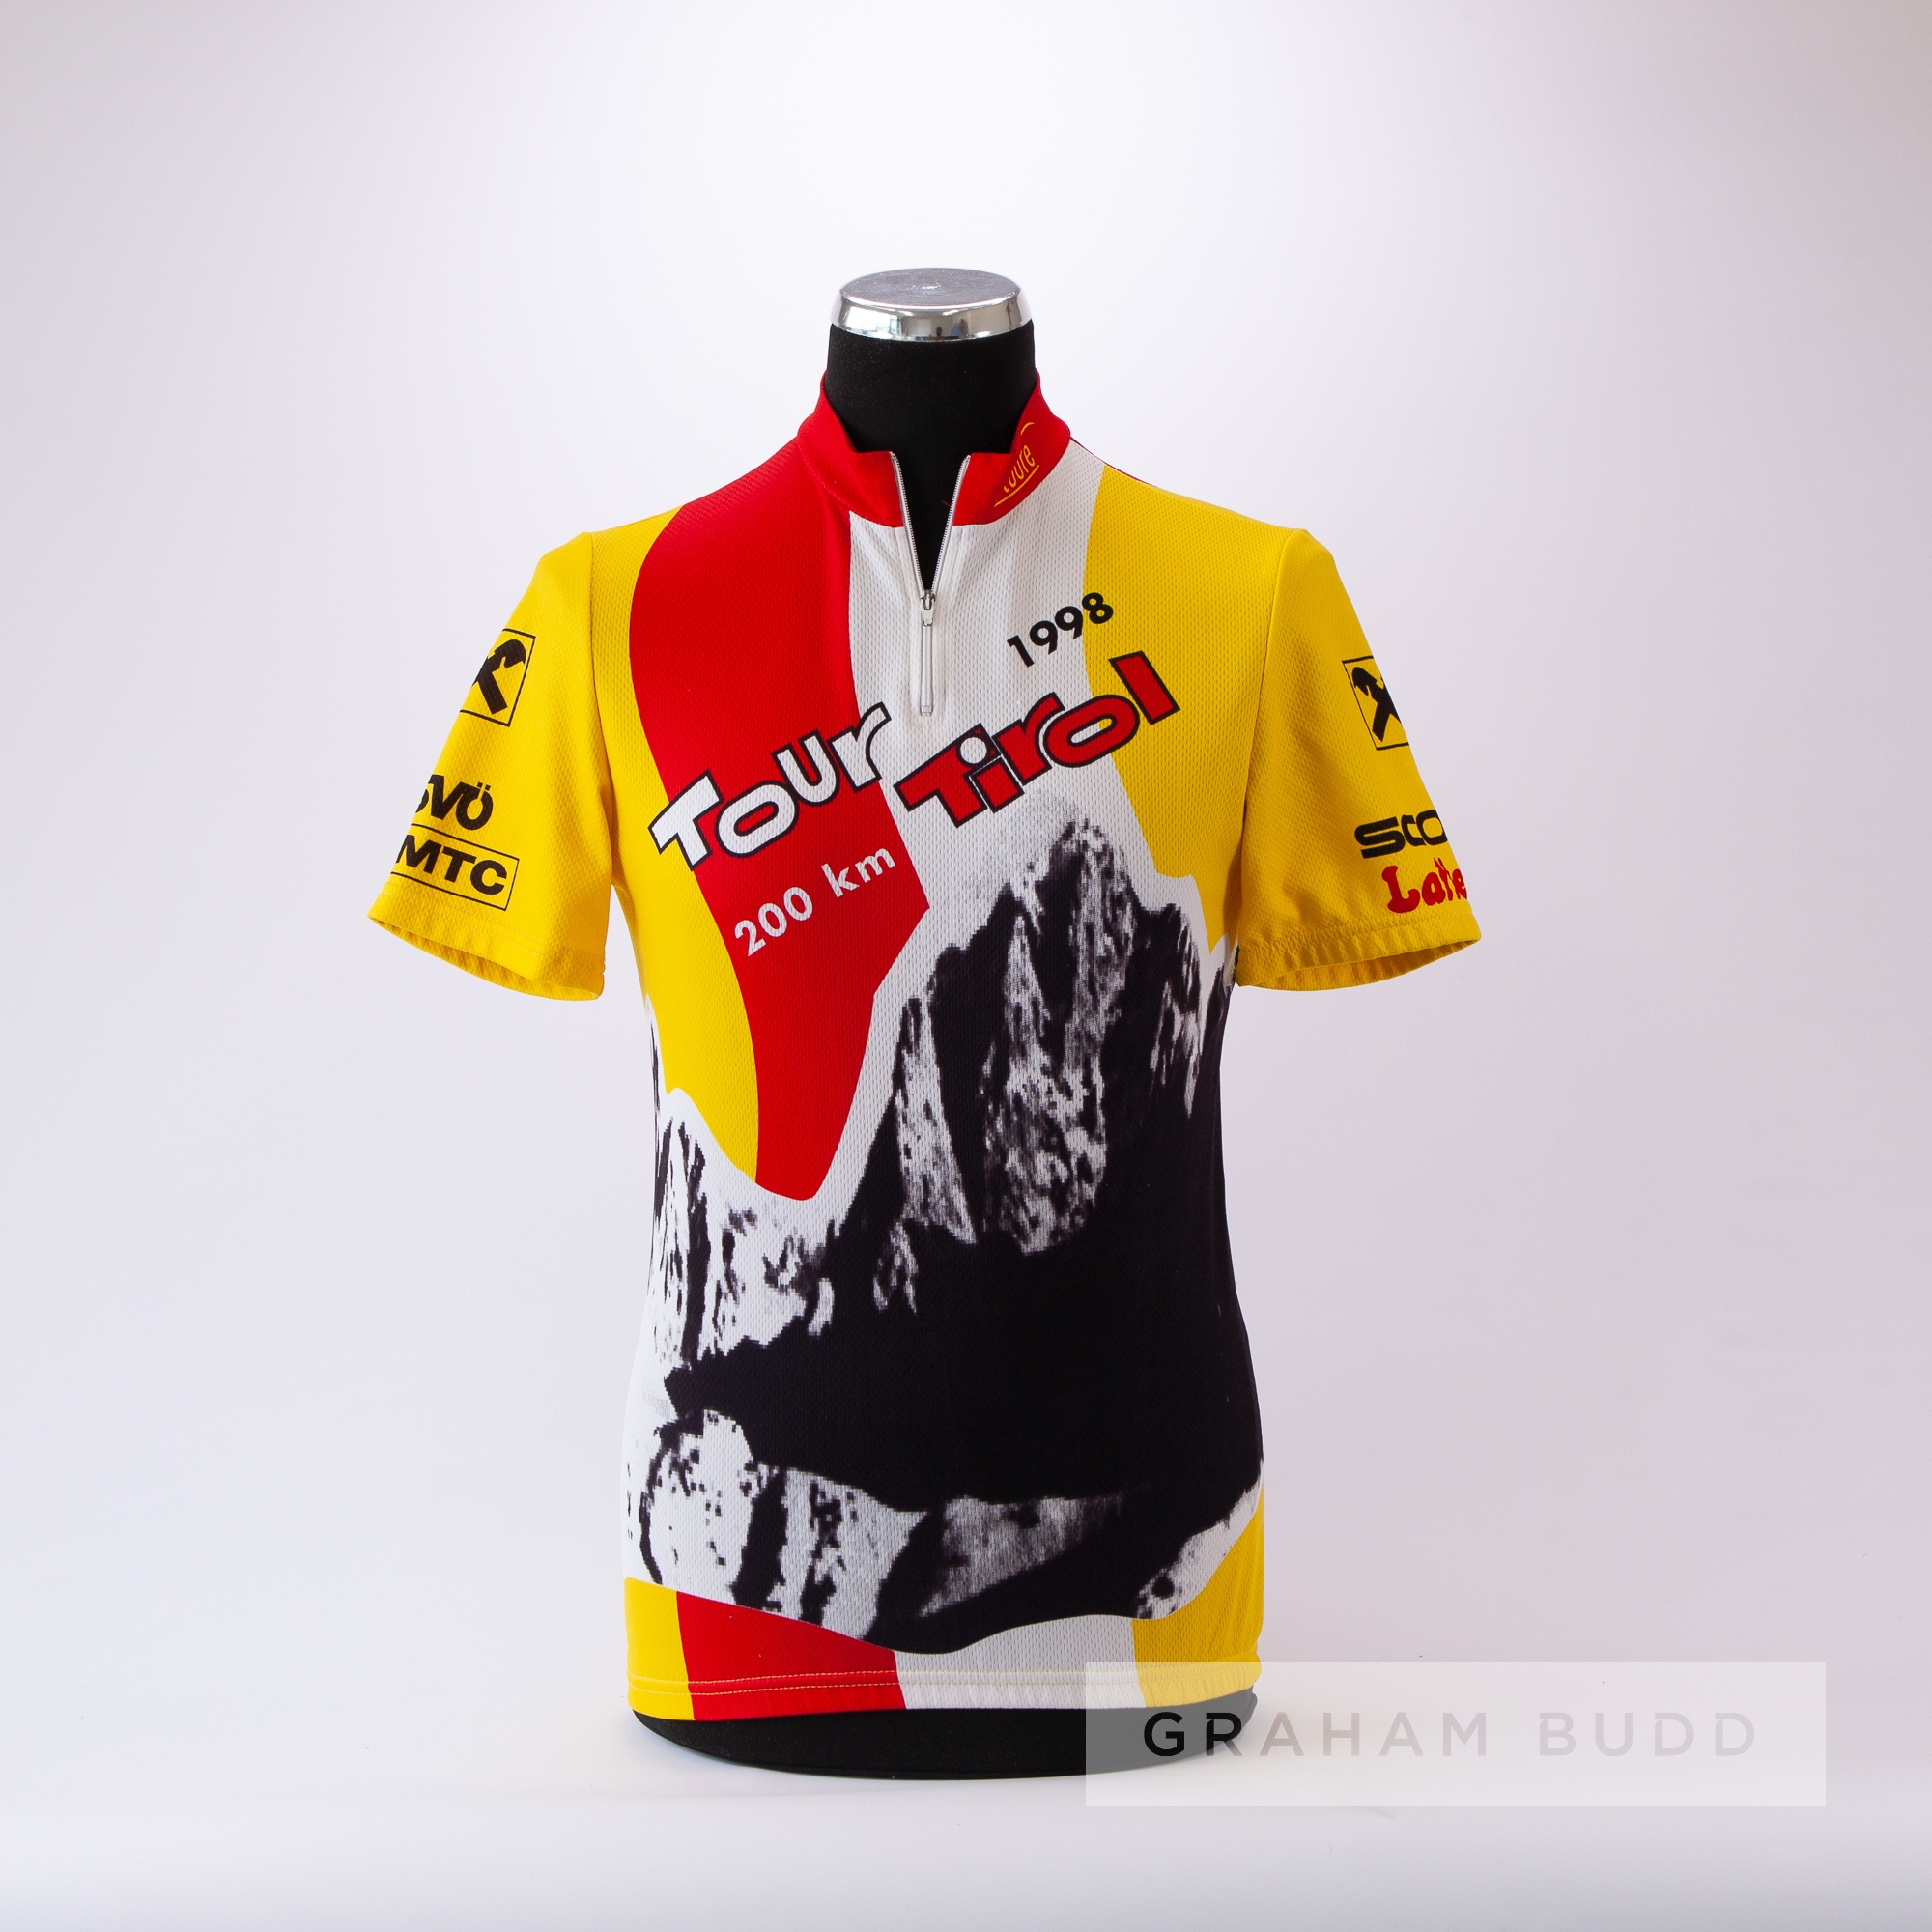 1998 yellow, black, red and white Tour Tirol 200 km Cycling race jersey, scarce, polyester short- - Image 3 of 4